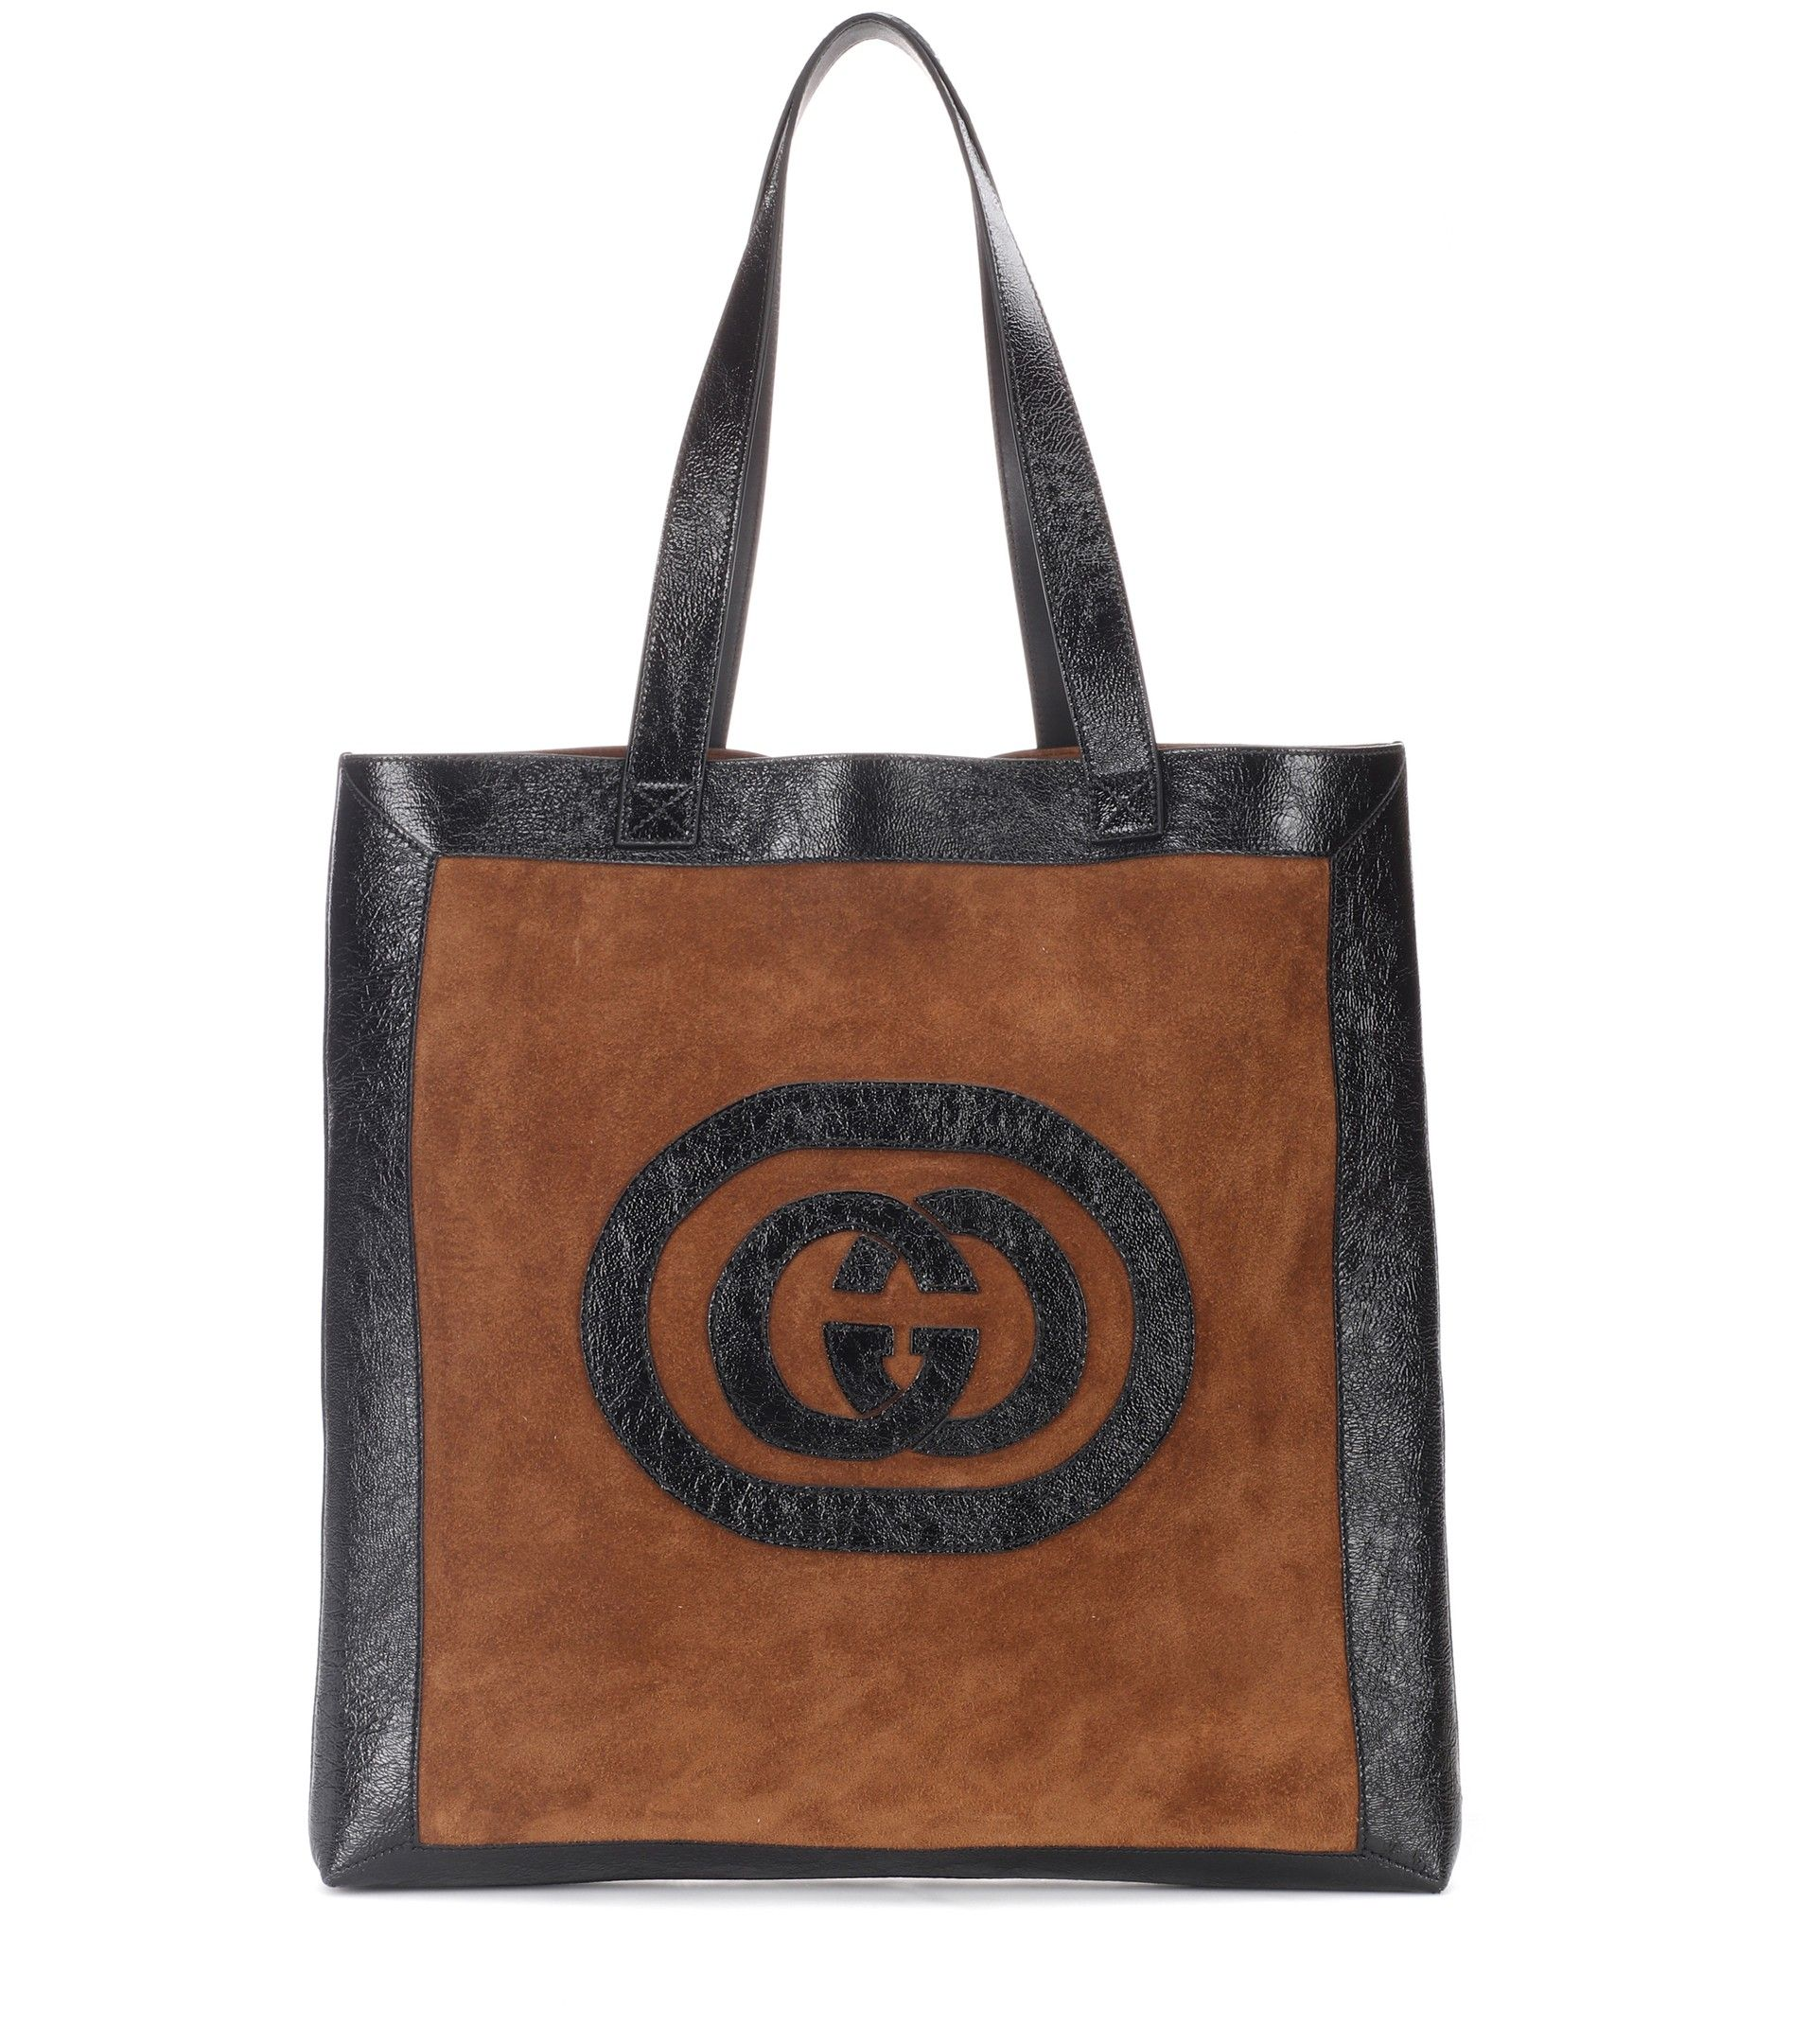 edc8b968061 Gucci - Ophidia Large suede shopper Gucci Bags